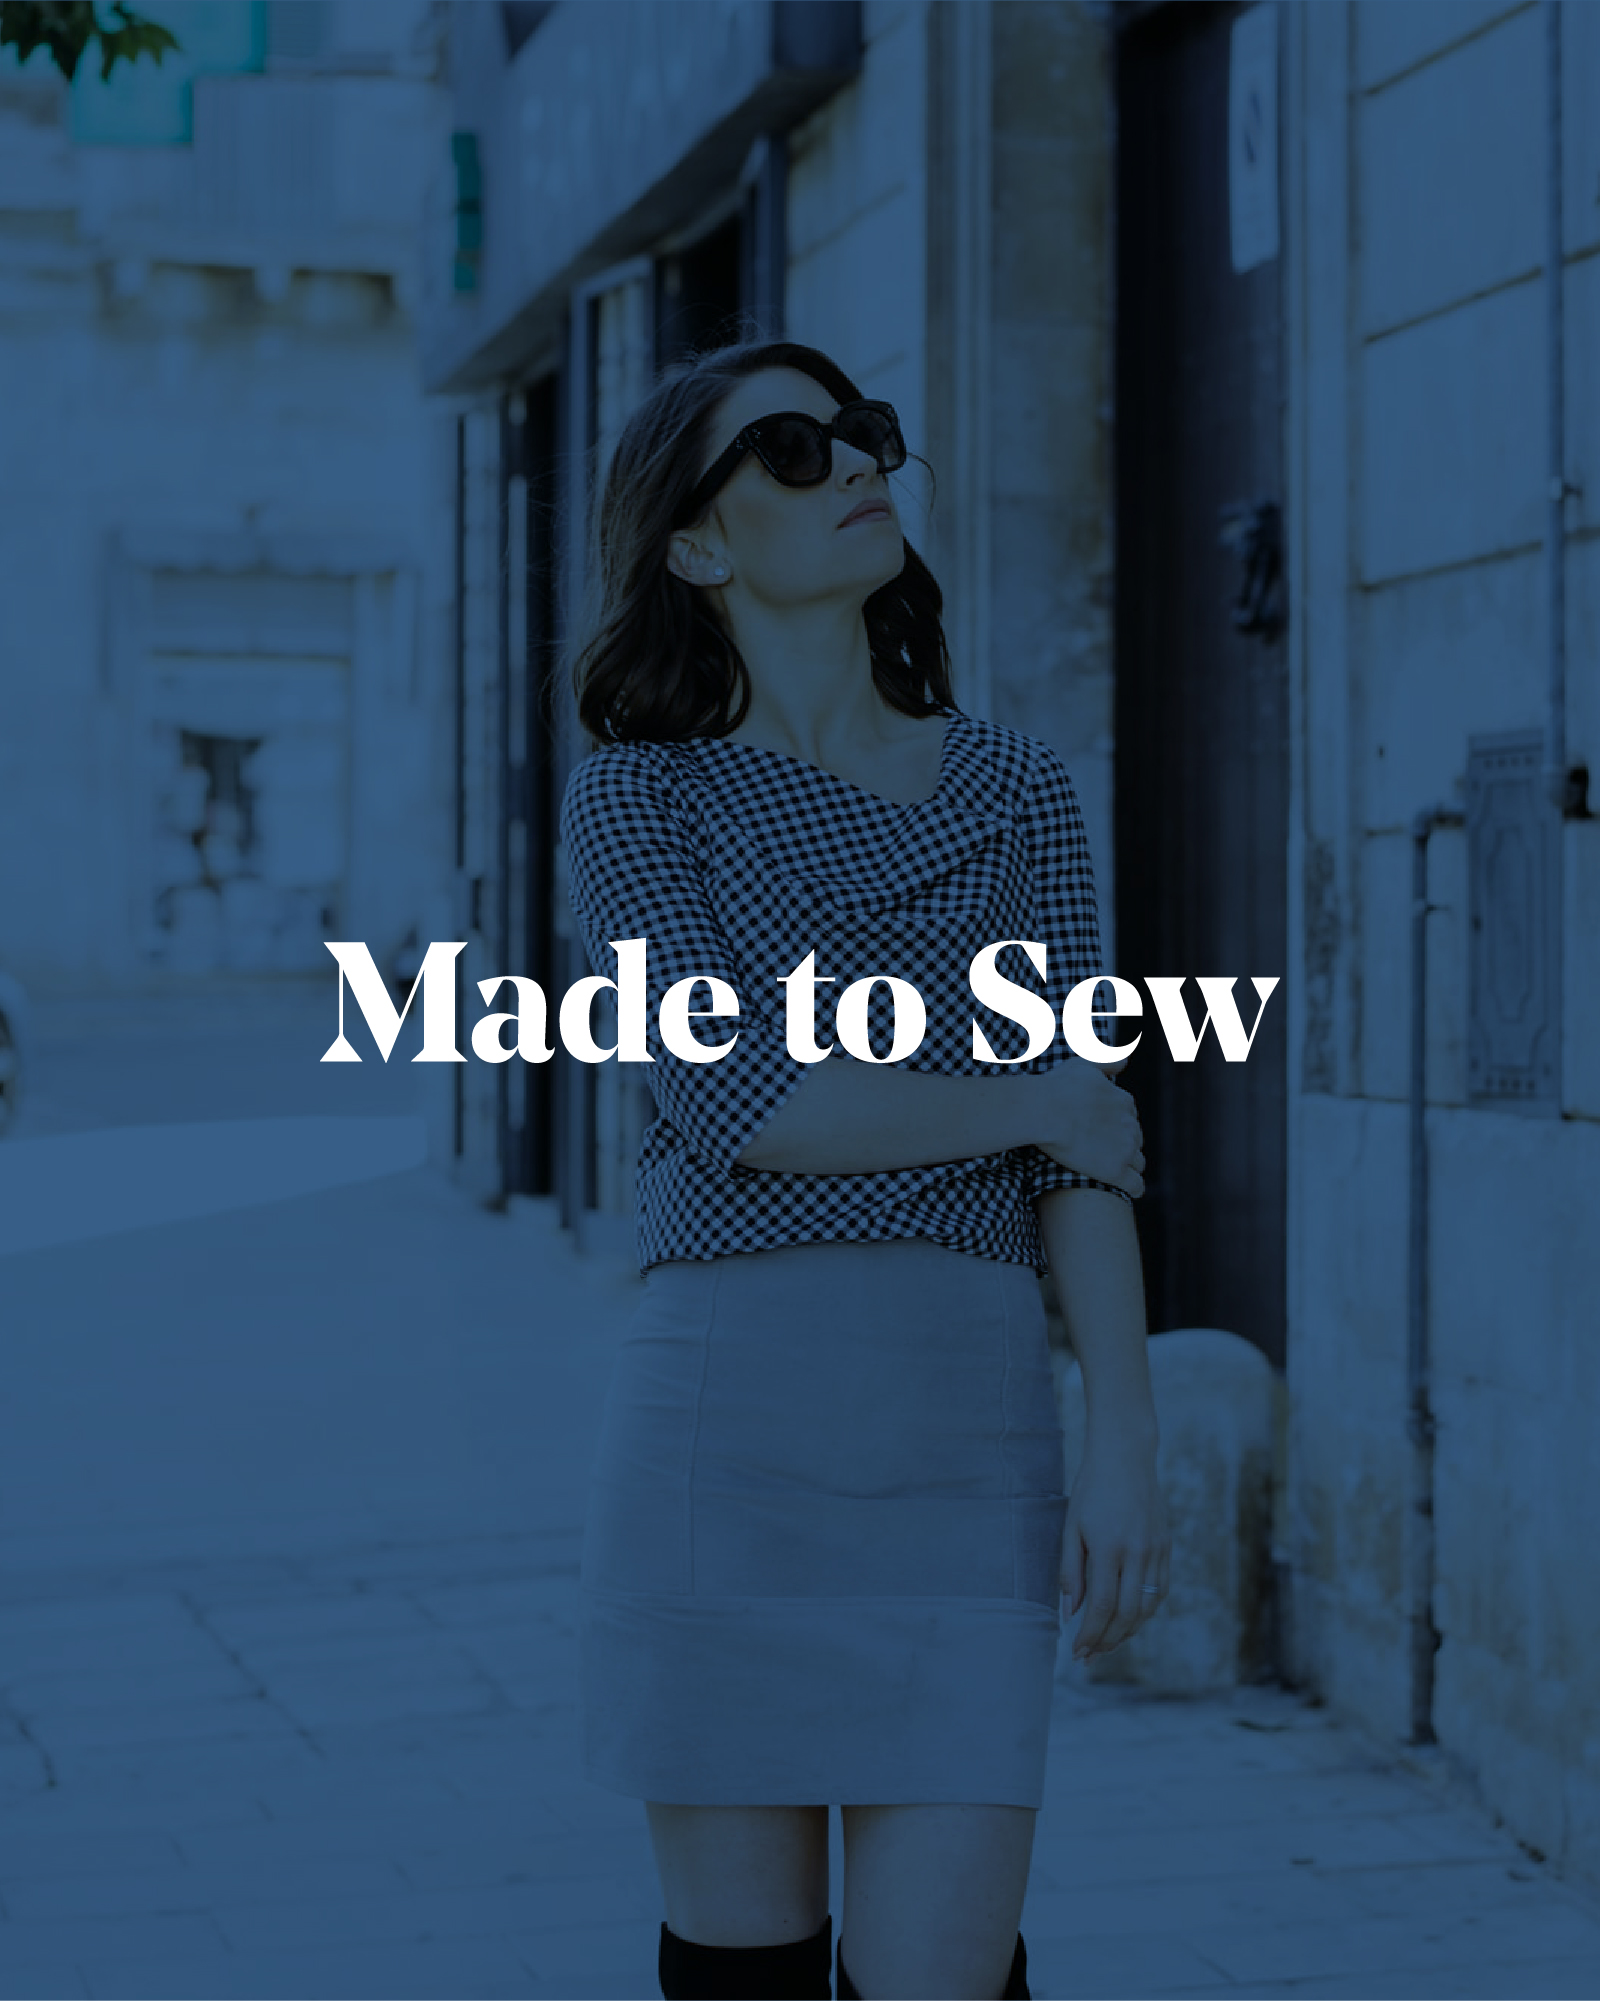 A lady in sunglasses with Made to Sew logo laid on top